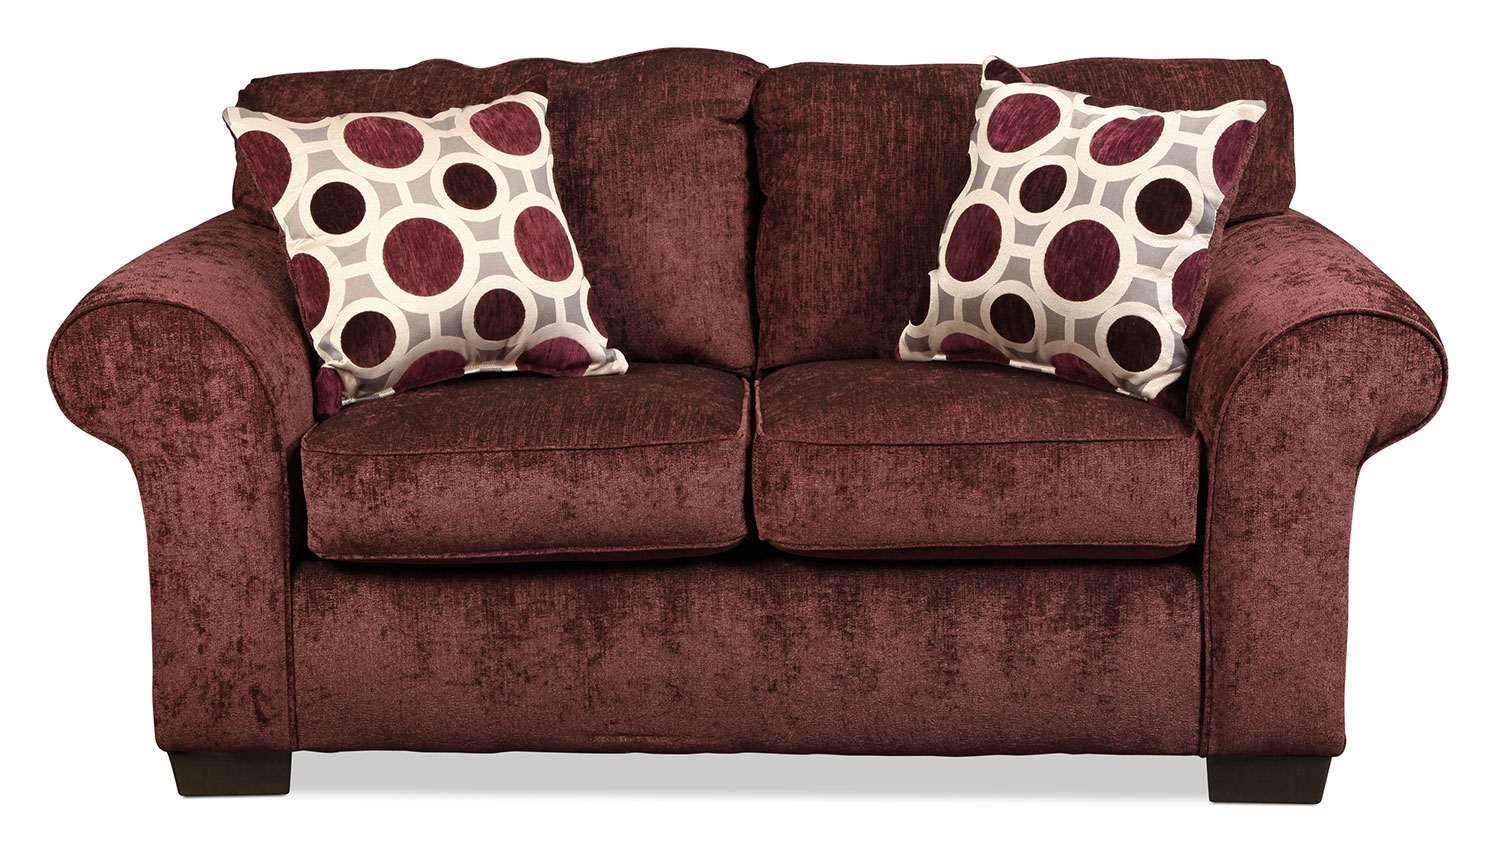 Roseville Loveseat - Elderberry